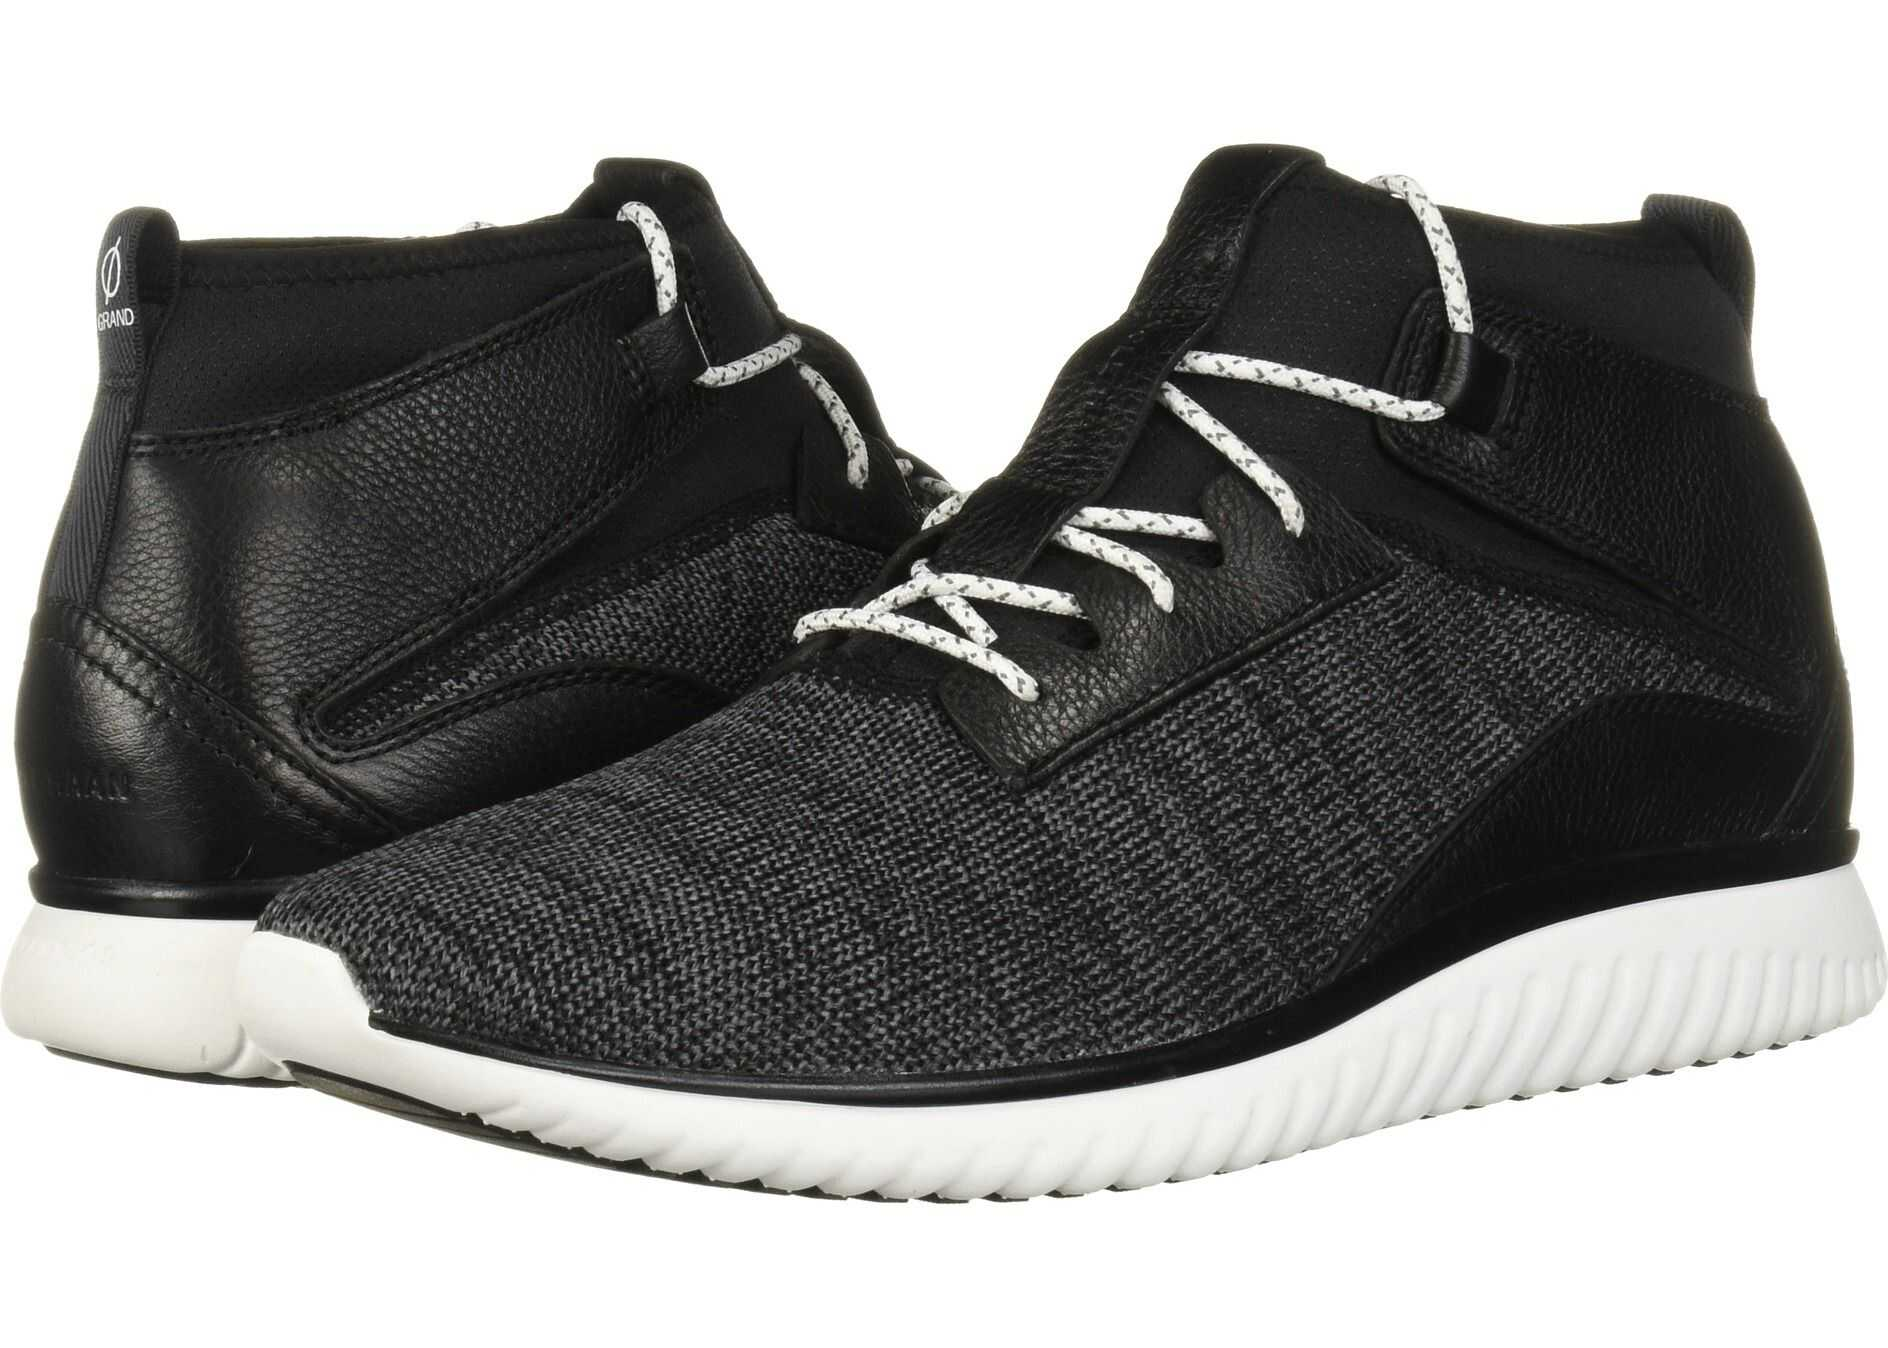 Cole Haan Grand Motion Mid Cut Black/Optic White